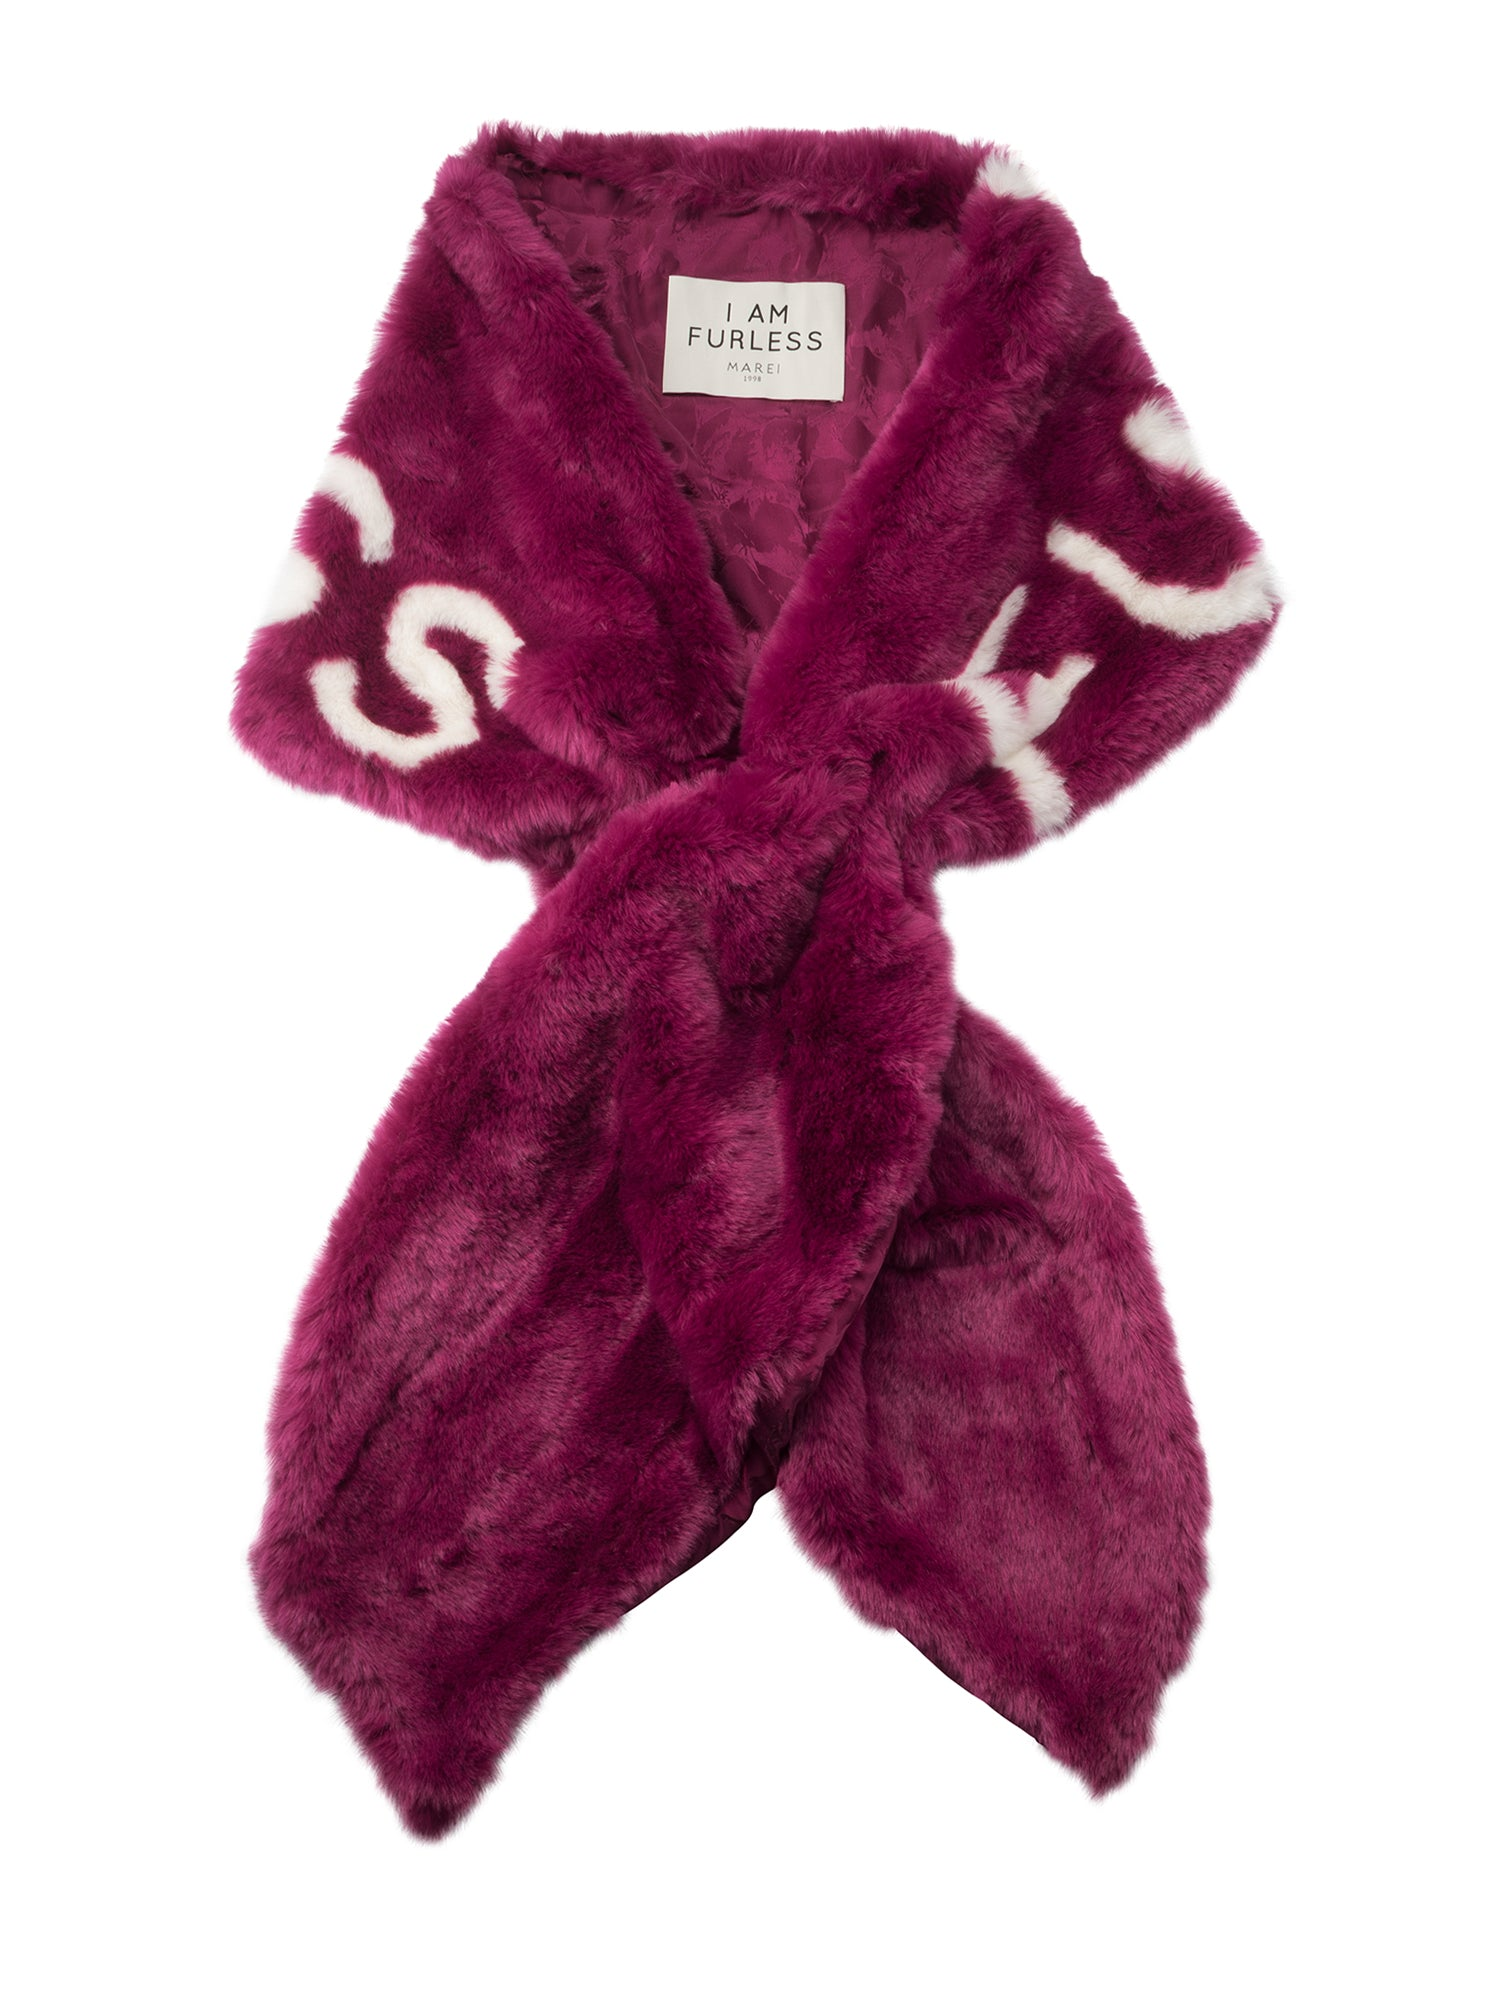 A Packshot Of Marei1998's Furless Faux Fur Stole In Bold Raspberry Hue. Exclusively Designed As Part Of Marei1998's Furless Label, This Stole Is A Bold Statement Piece. Cut In A Wide Silhouette, It Is Crafted From Plush Faux Fur In Bold Raspberry Hue, Featuring Jacquard Design In Off White.